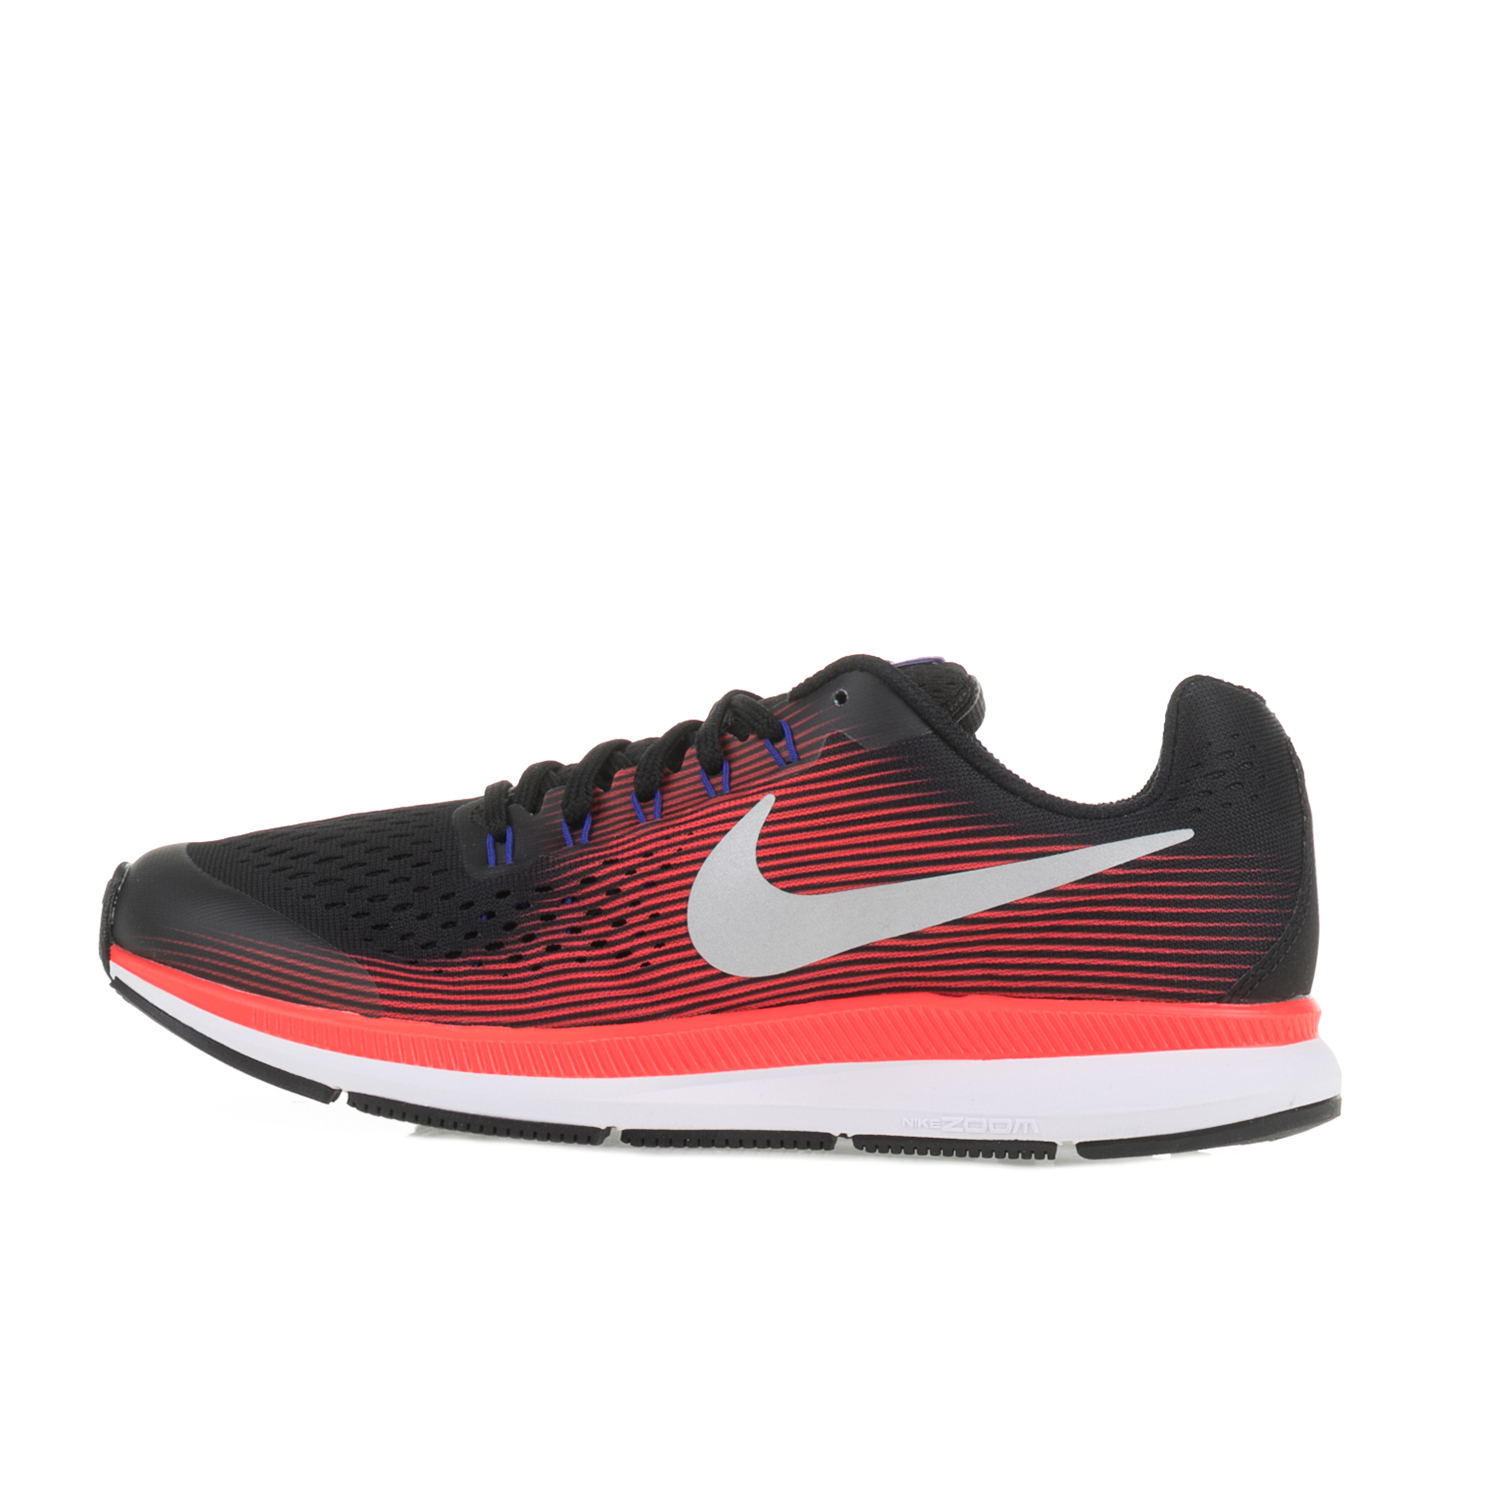 4058634b6f -44% Factory Outlet NIKE – Παιδικά αθλητικά παπούτσια Nike ZOOM PEGASUS 34  (GS) μαύρα-κόκκινα